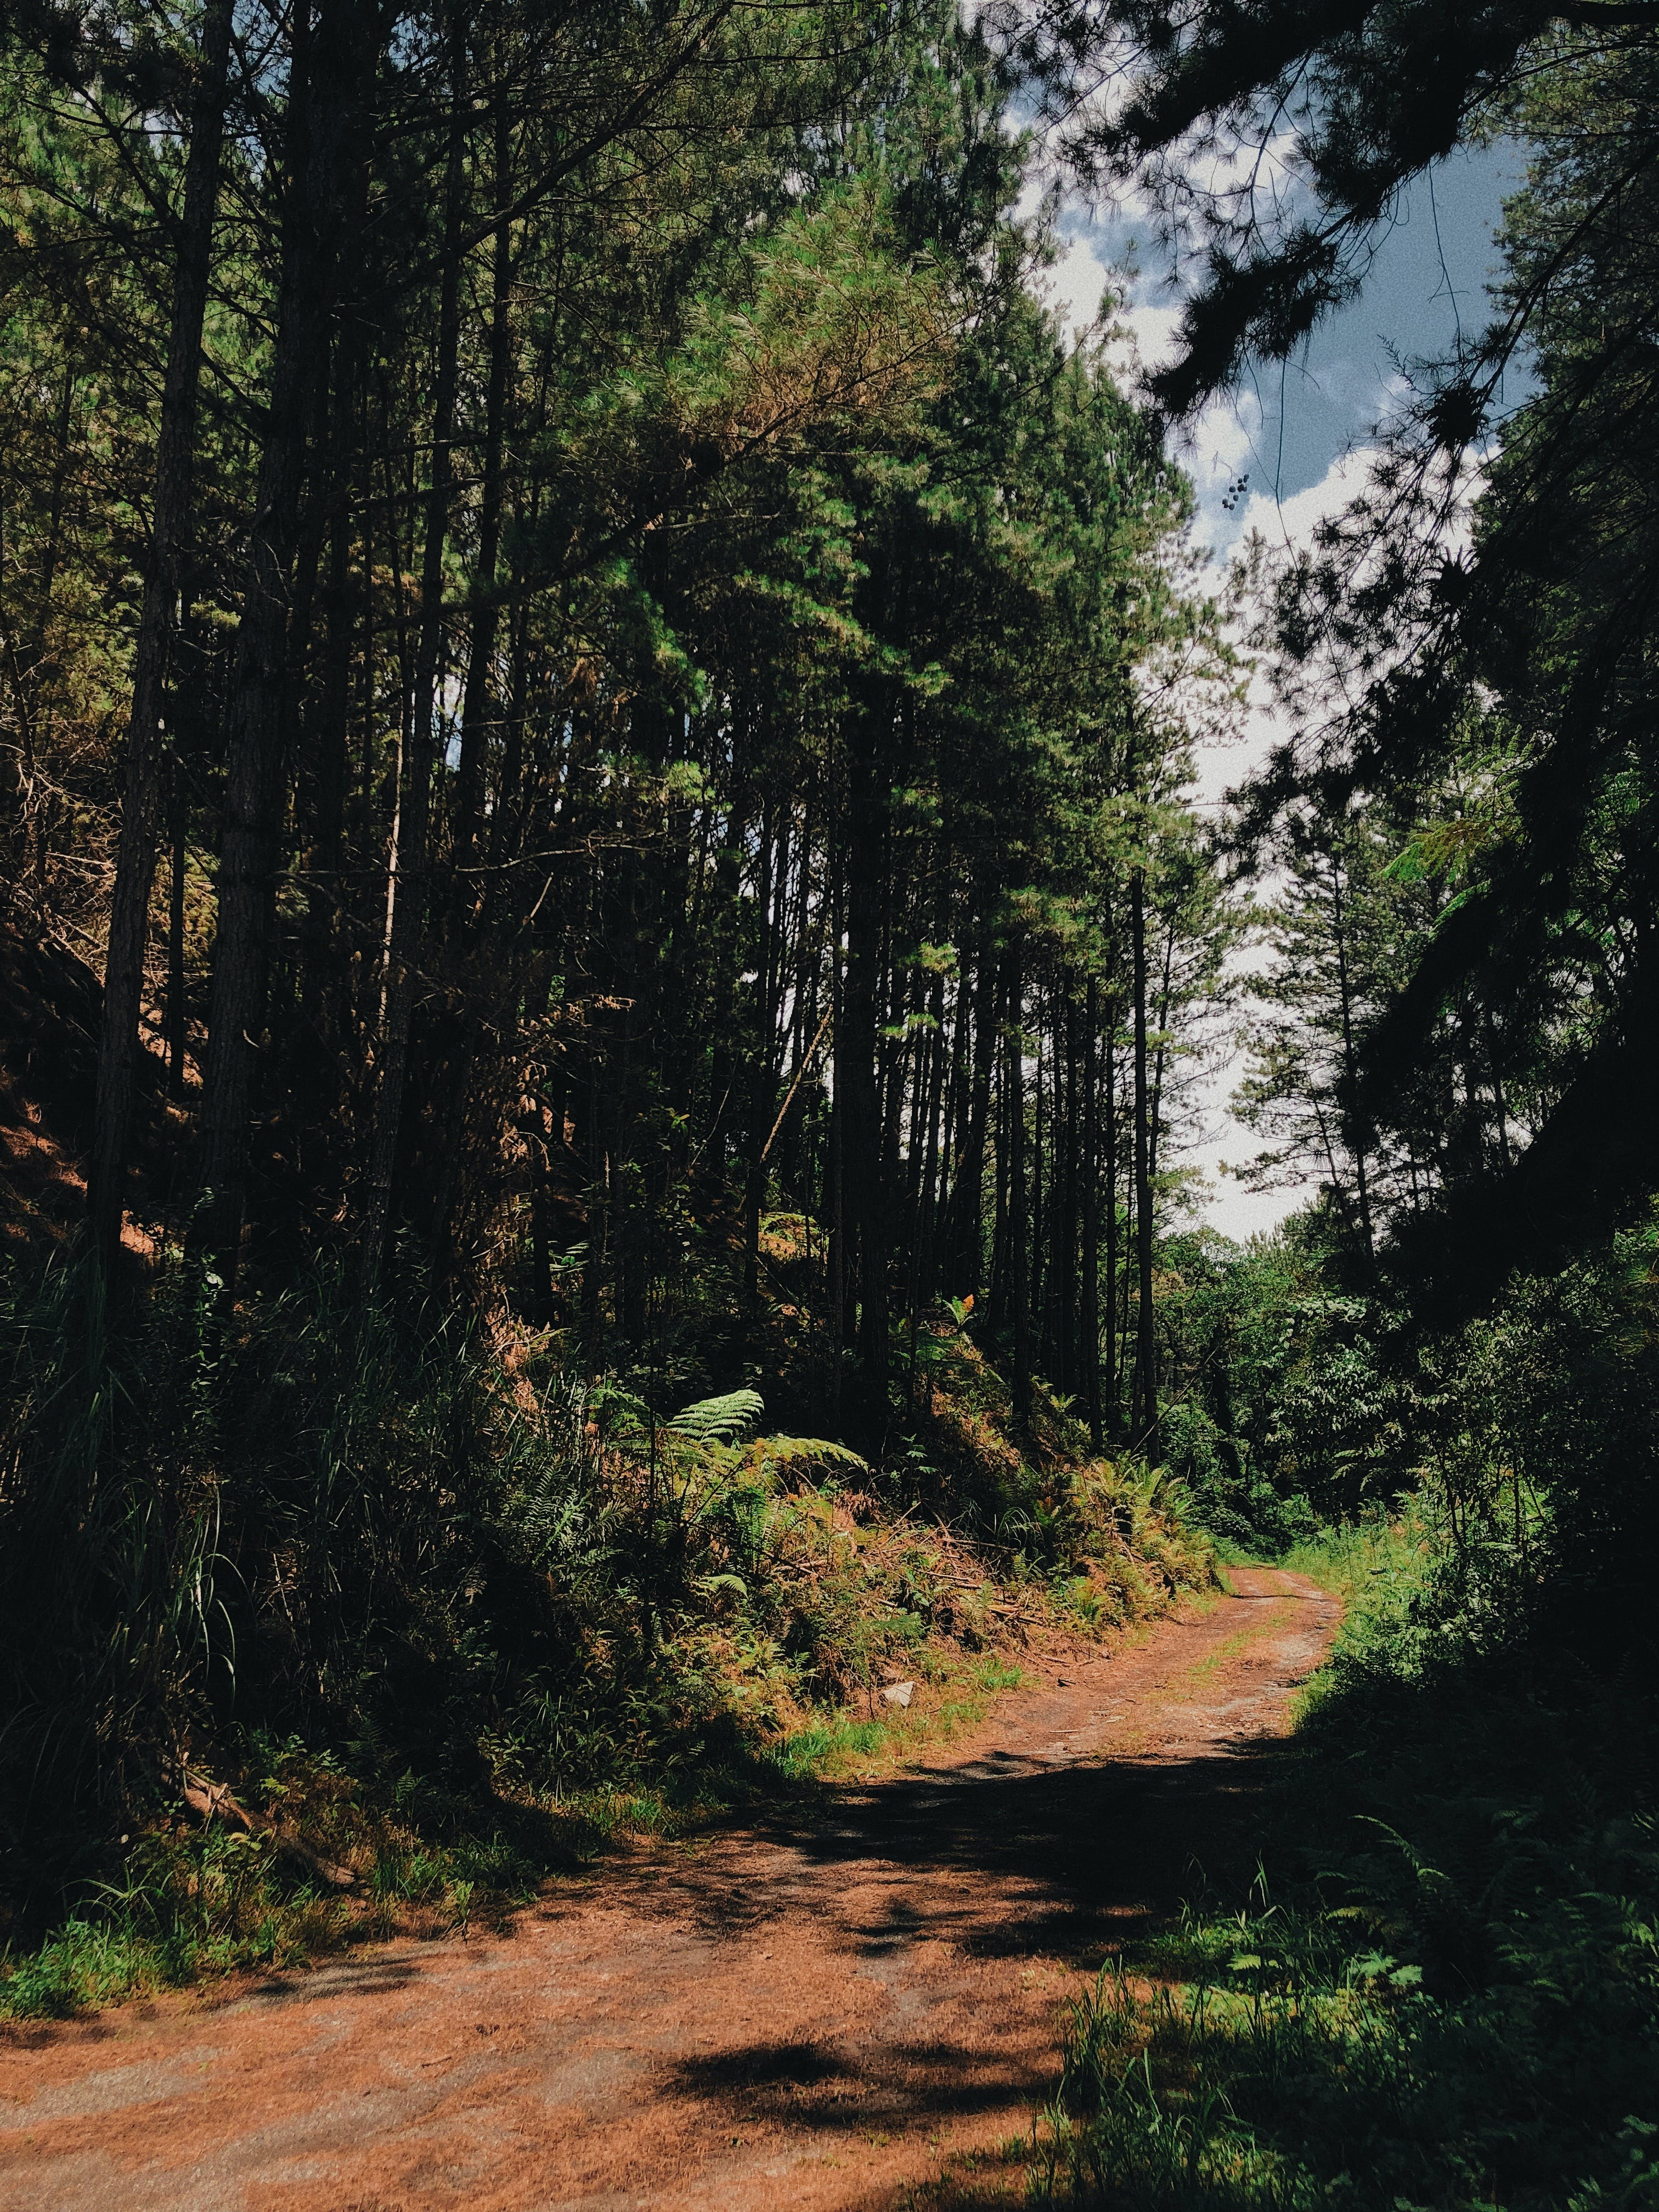 Dirt Path in the Middle of the Forest